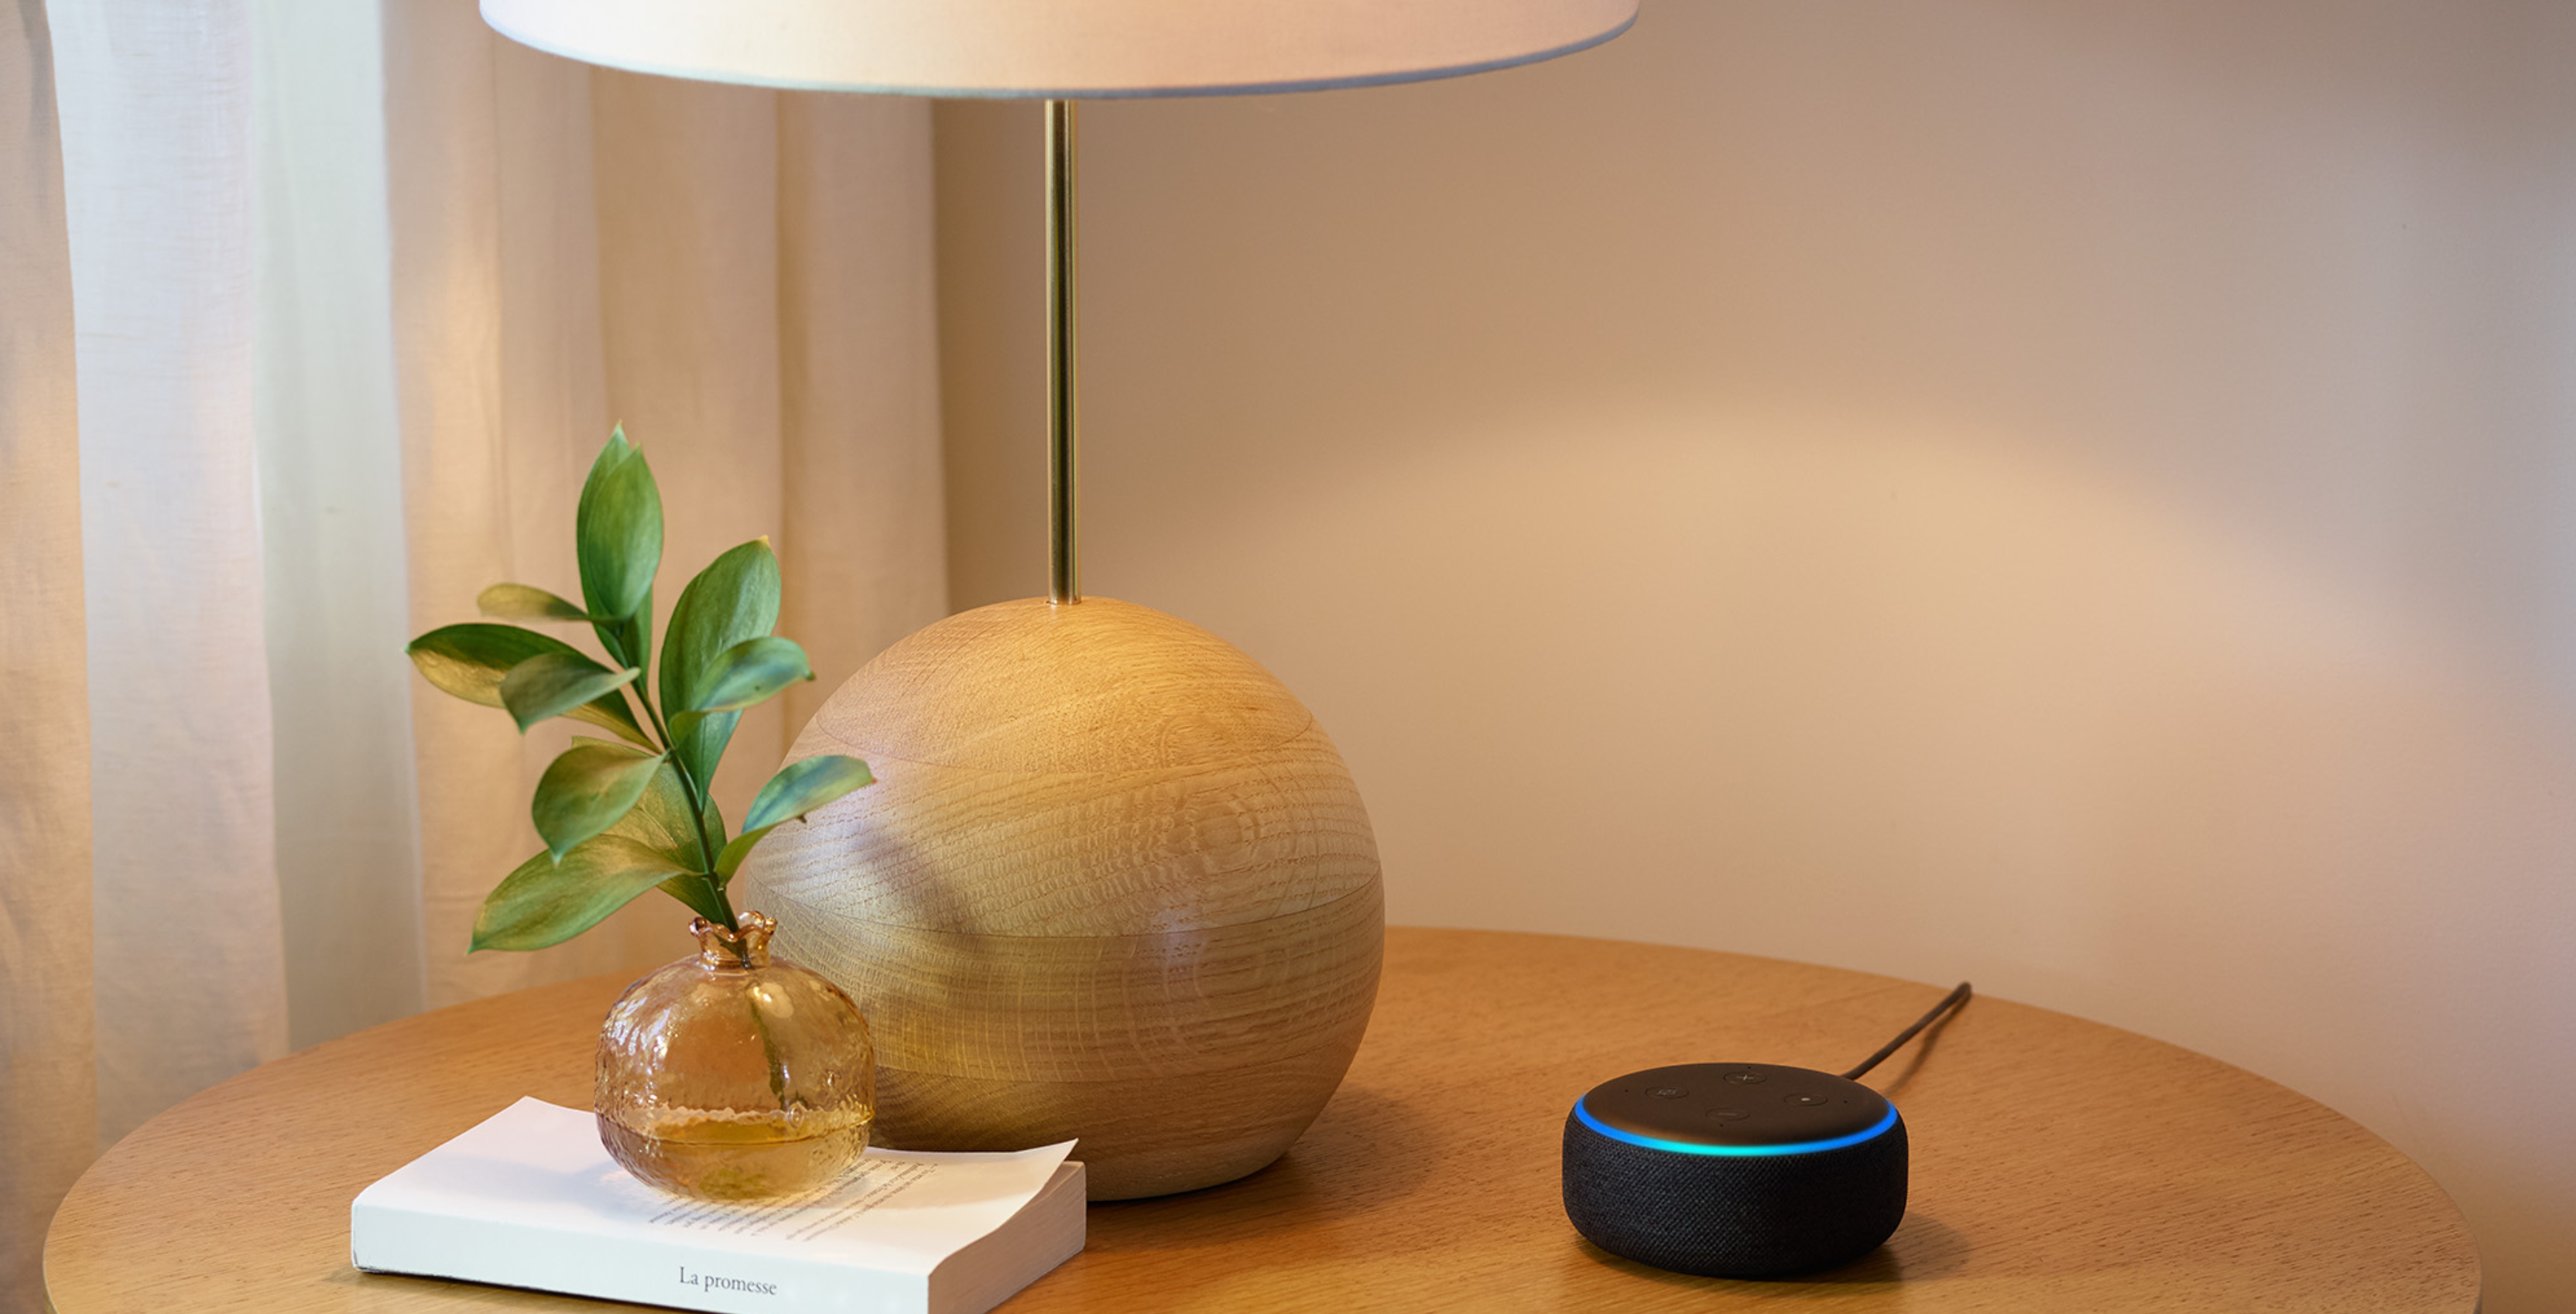 Amazon Echo on a table with a lamp